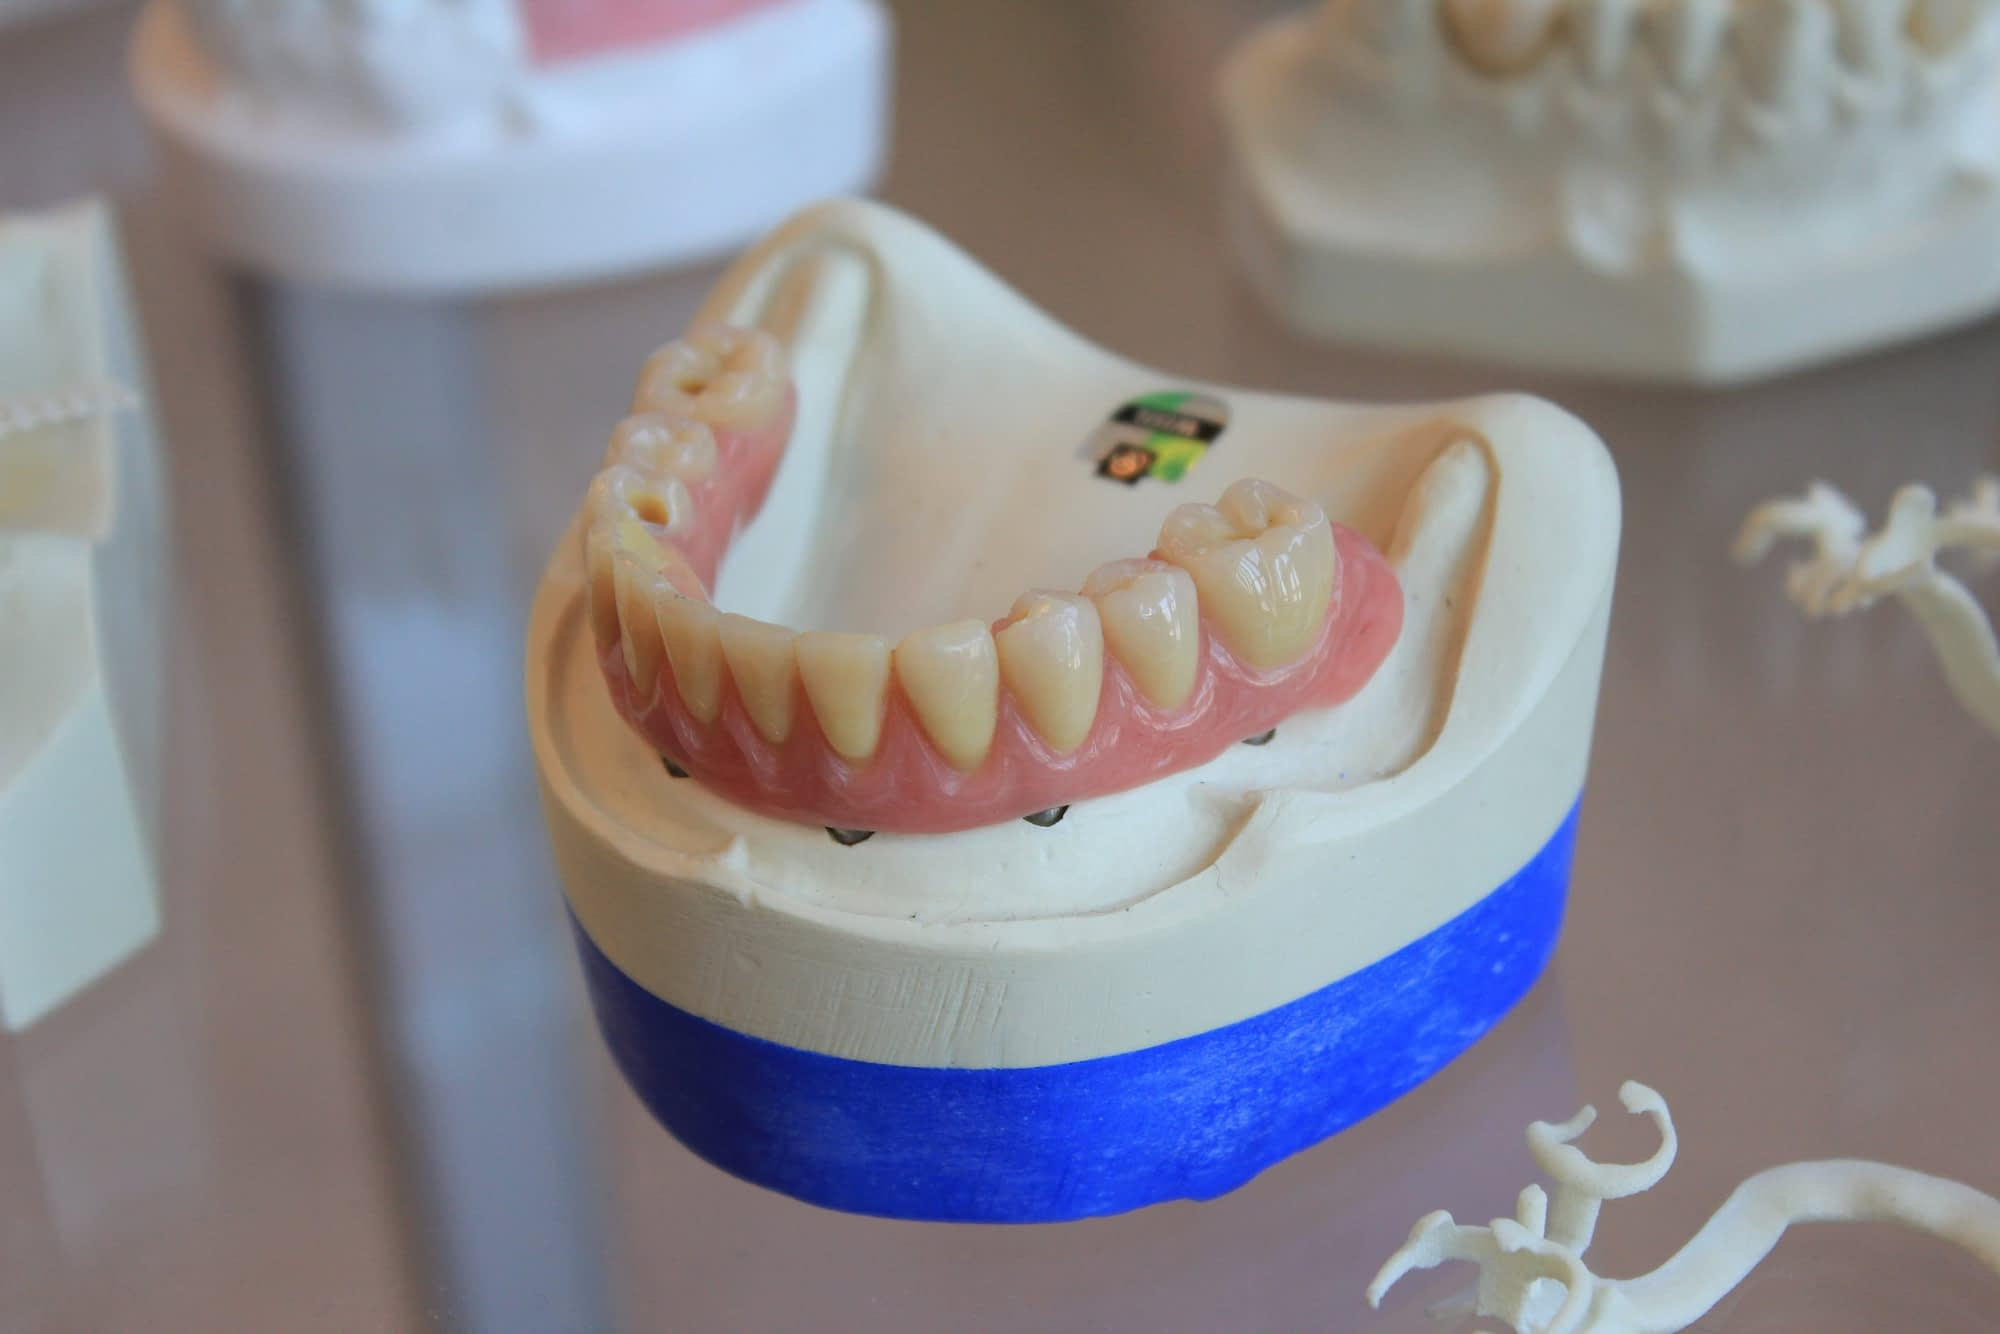 dentures on a white tray